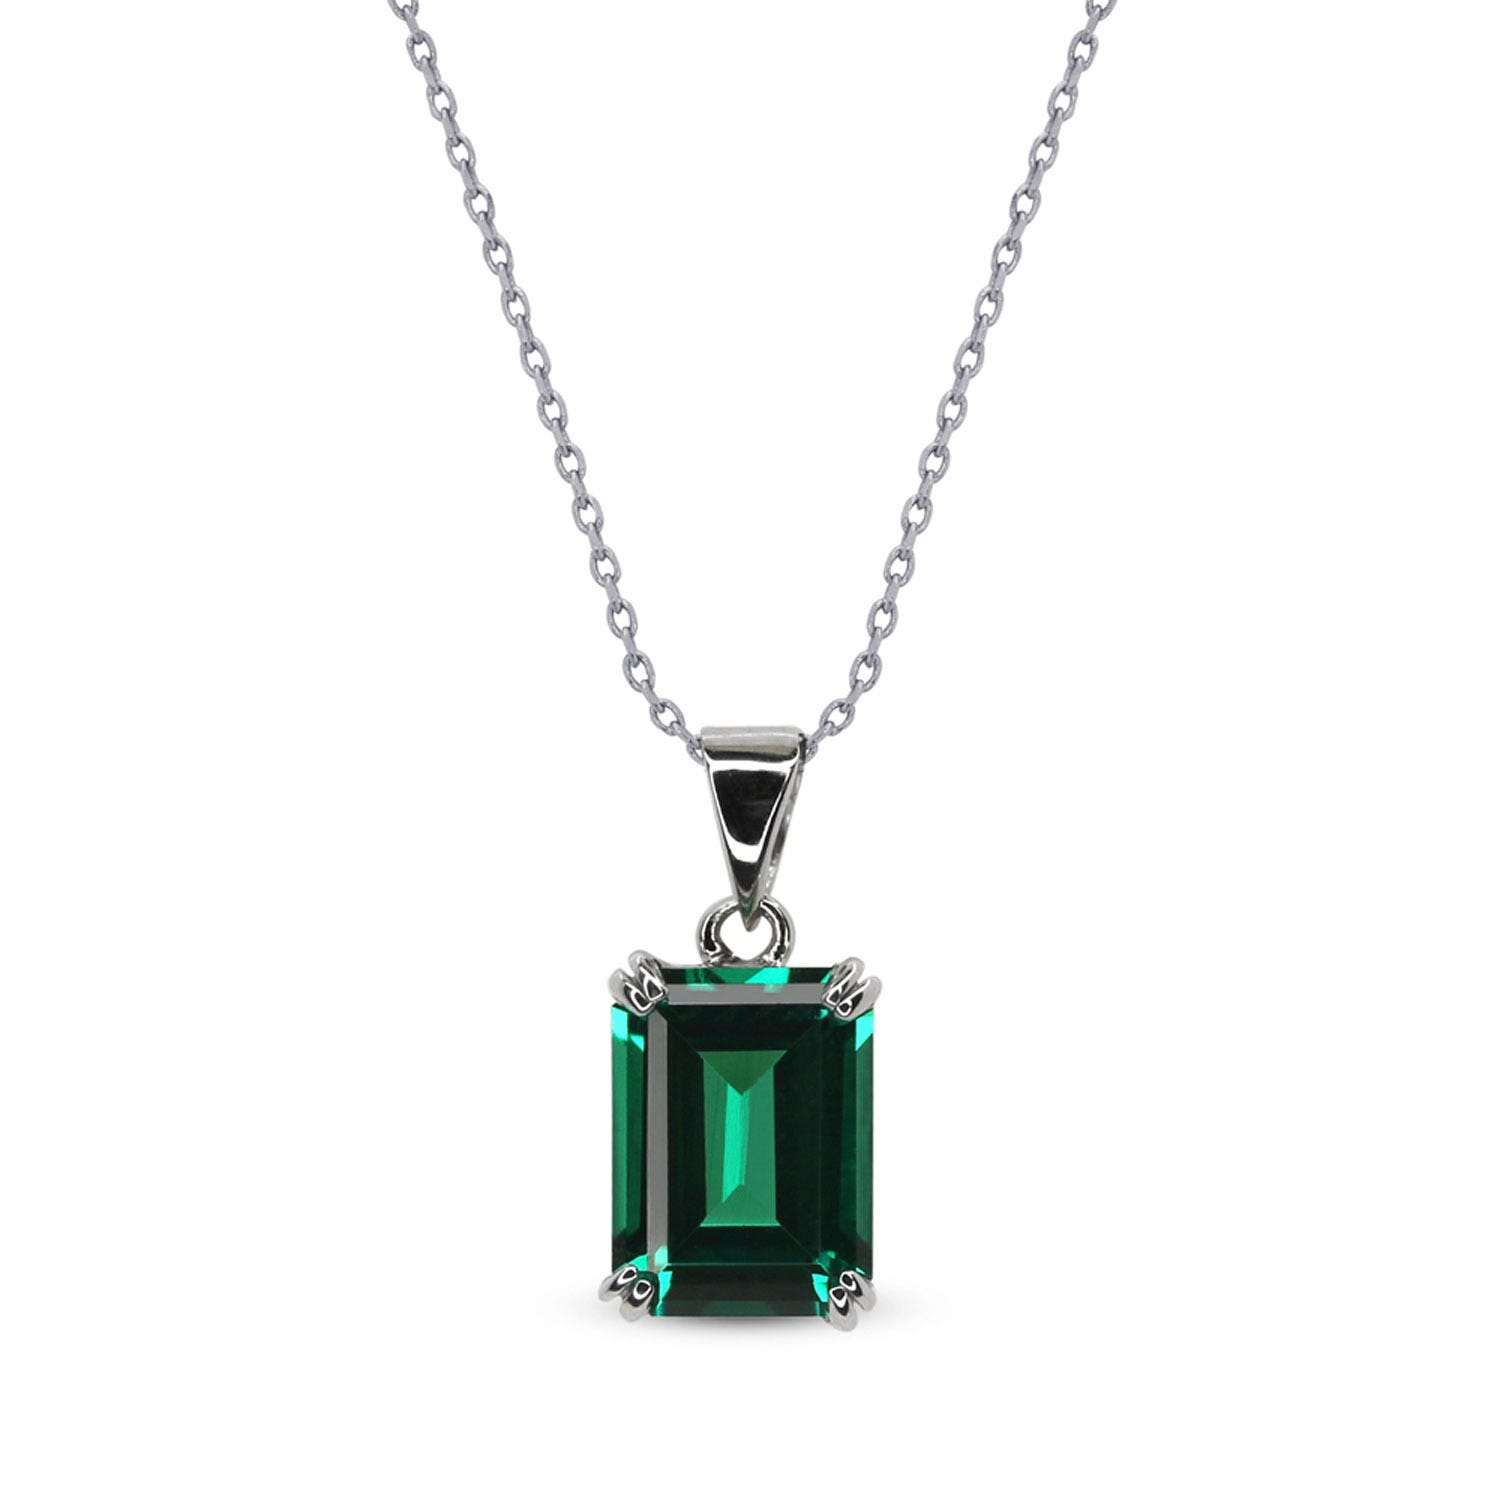 CARAT* London 9ct White Gold Emerald Green Pendant